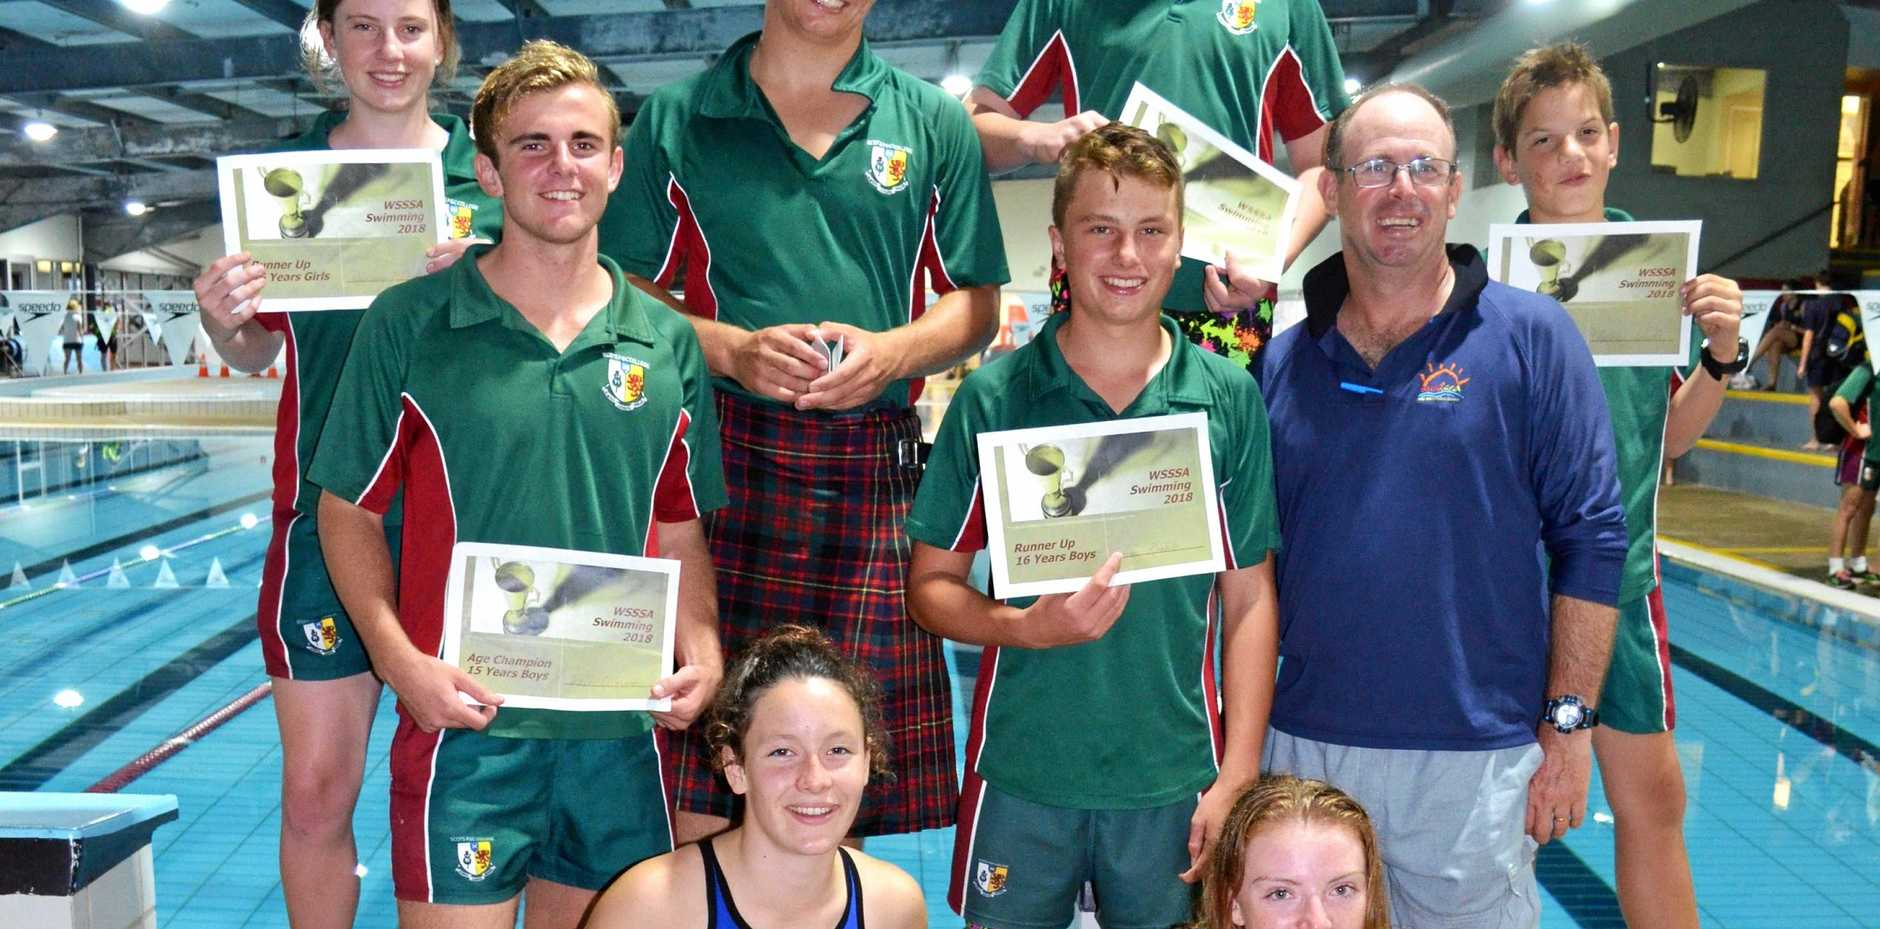 SCOTS PGC COLLEGE WINNERS: (Back, from left) Rosemary McDonald, Thomas Winter, Max Keable, Lachlan Woods, (middle) William Gilmore, Thomas Keable, staff member Tom Bradbury, (front) Shona McFarland and Emily Rhodes after the Warwick All Schools Swimming.